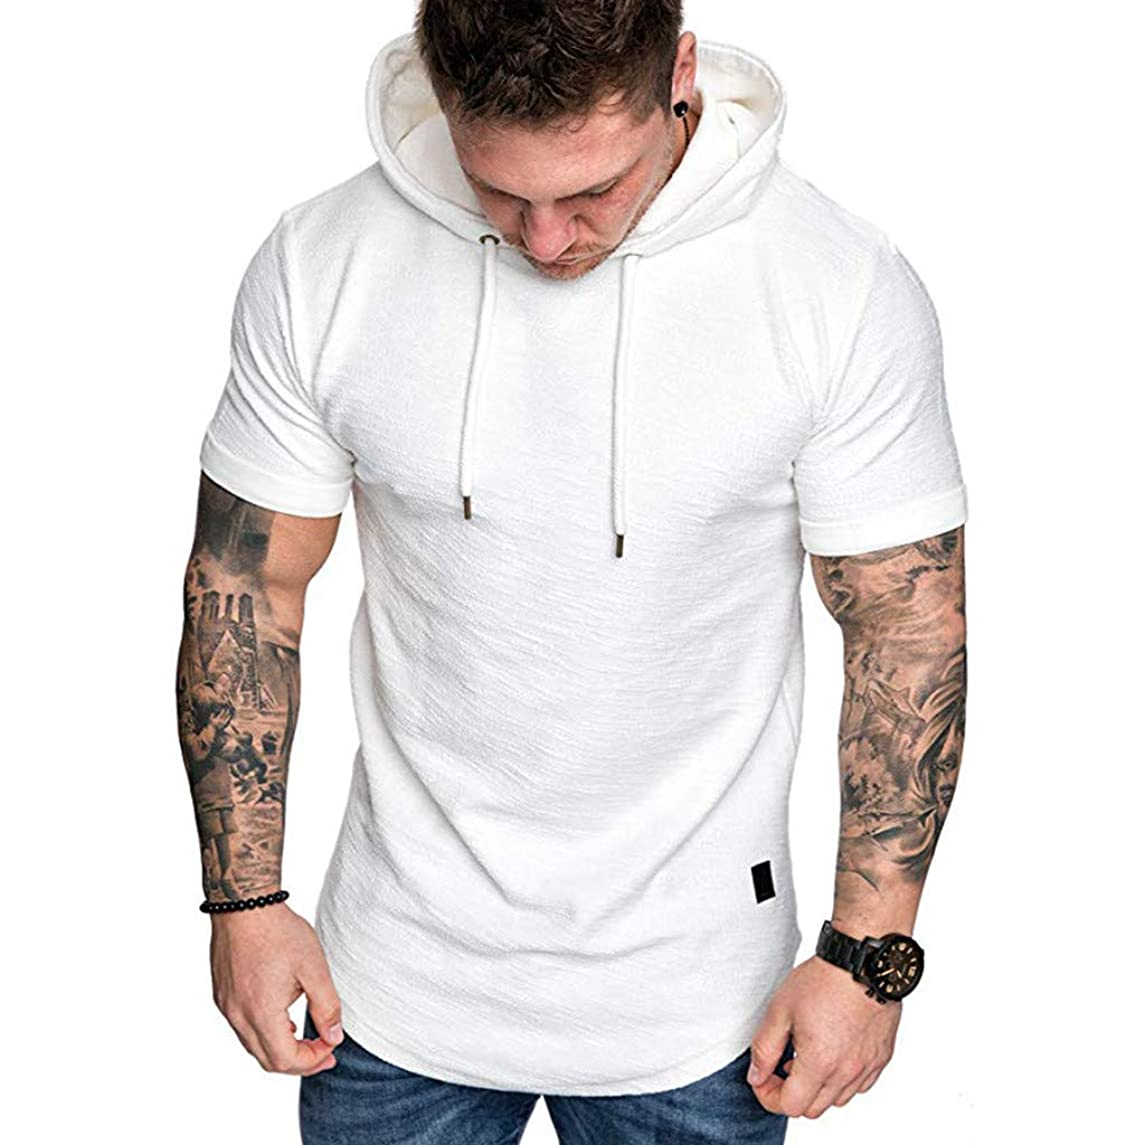 LEXUPA Mens t Shirts Fashion Men's Slim Fit Casual Popular Large Size Short Sleeve Hoodie Top Blouse